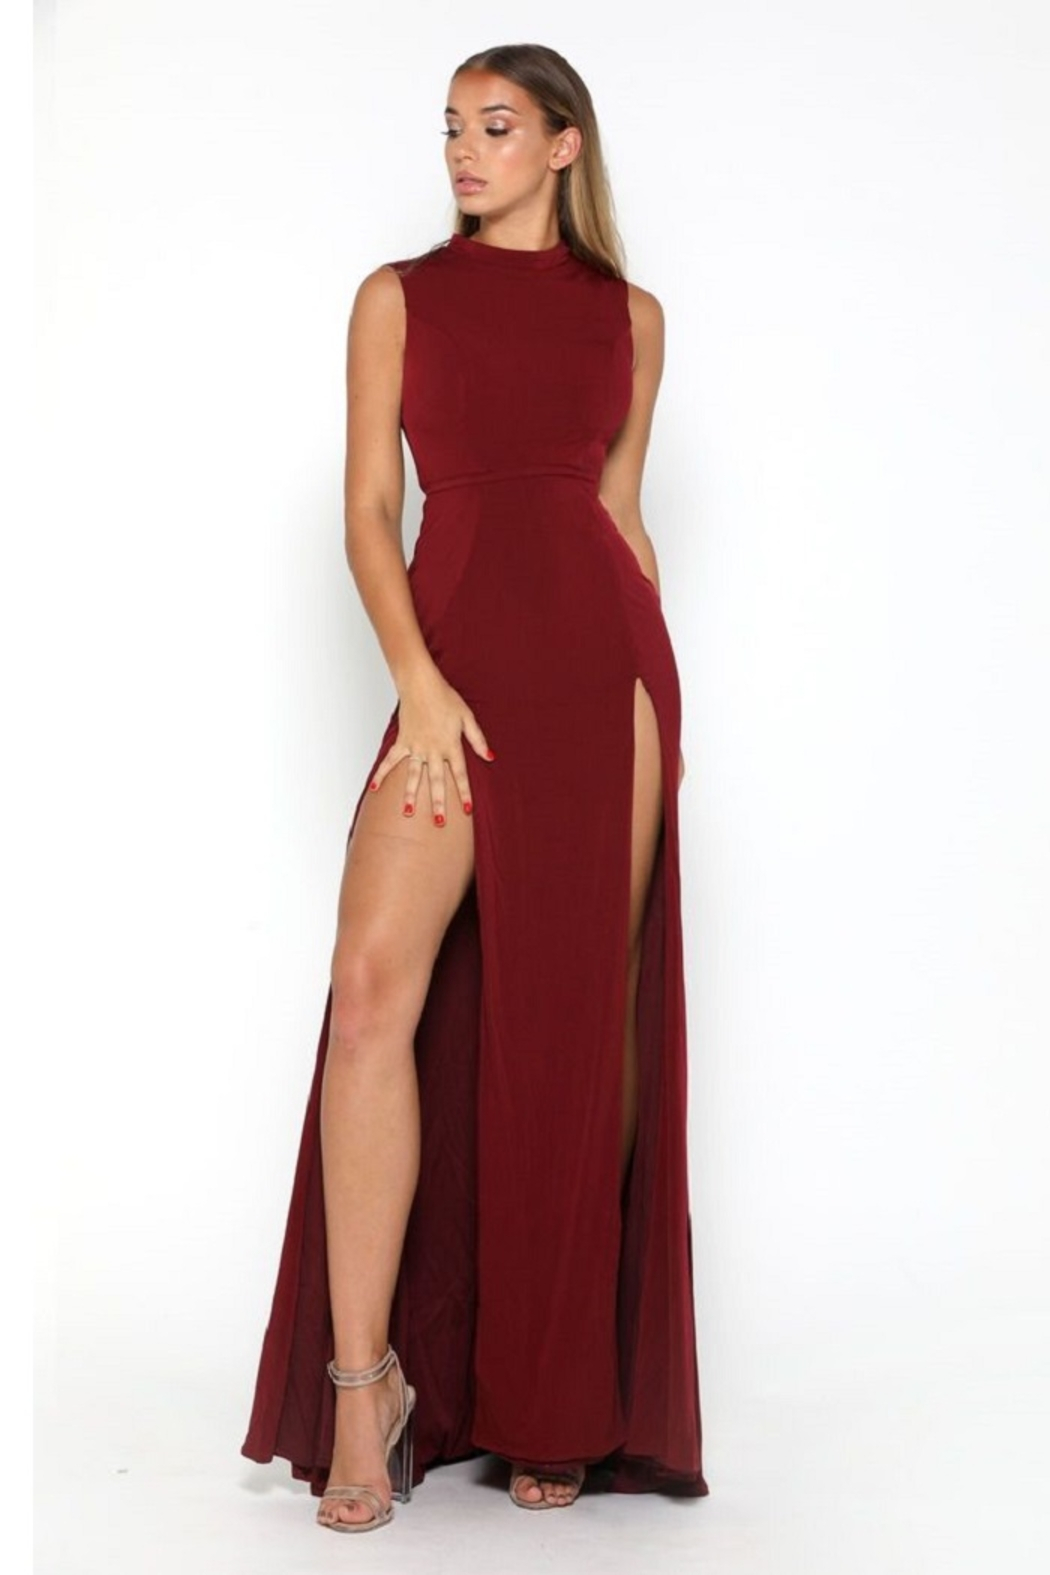 PORTIA AND SCARLETT Burgundy High Neck Long Semi-Formal Dress - Main Image